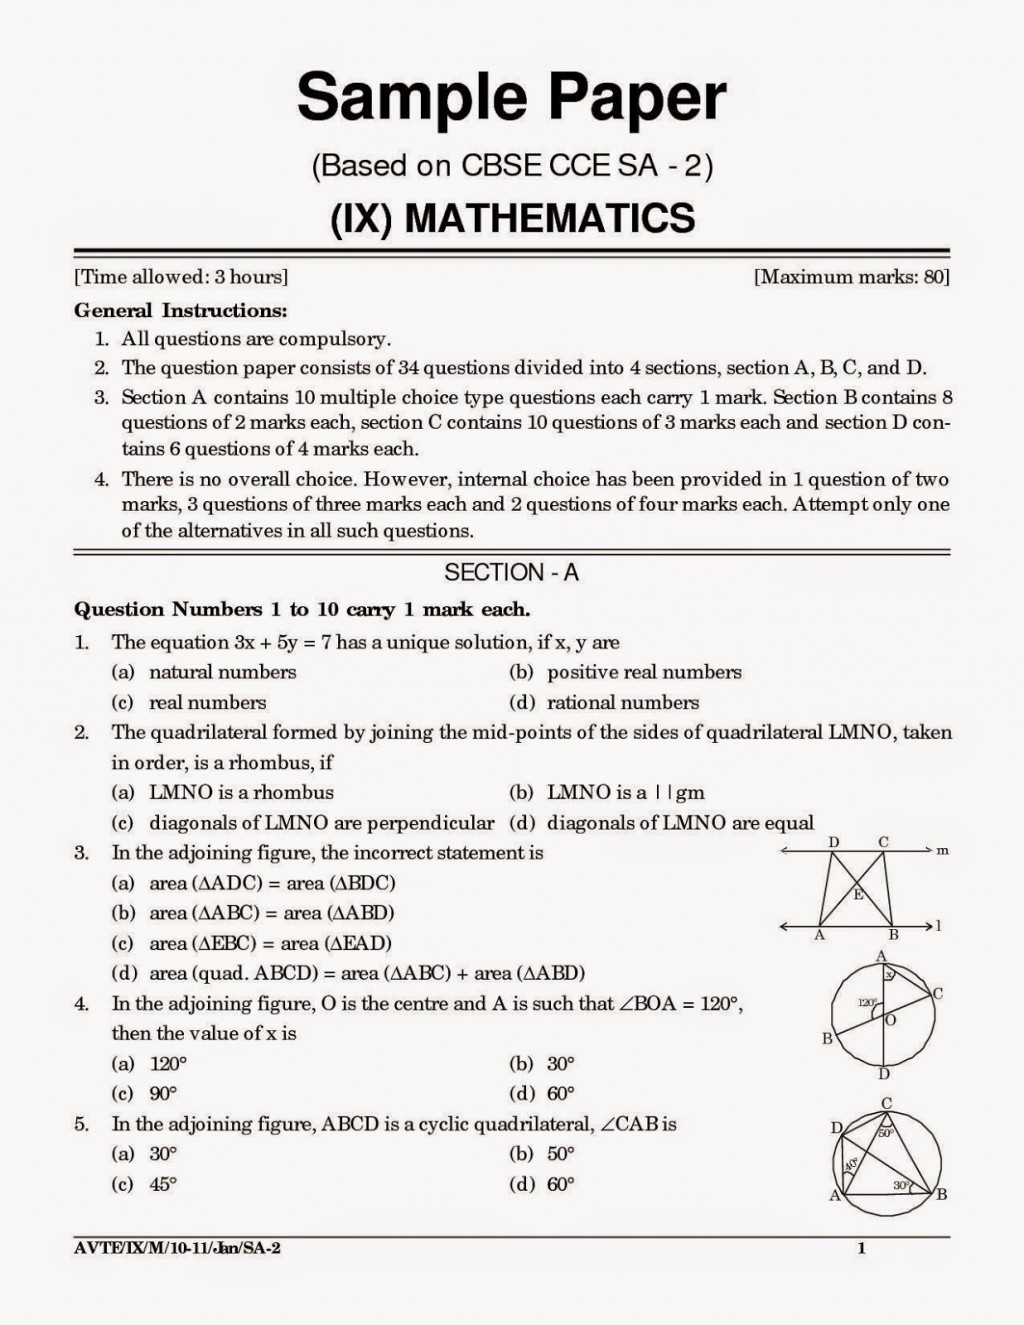 019 Sample Argumentative Essay Cbse20sample20papers20for20class201020mathematics20and20science Jpg Awful Outline Middle School Apa Format Ap Argument Prompts Large